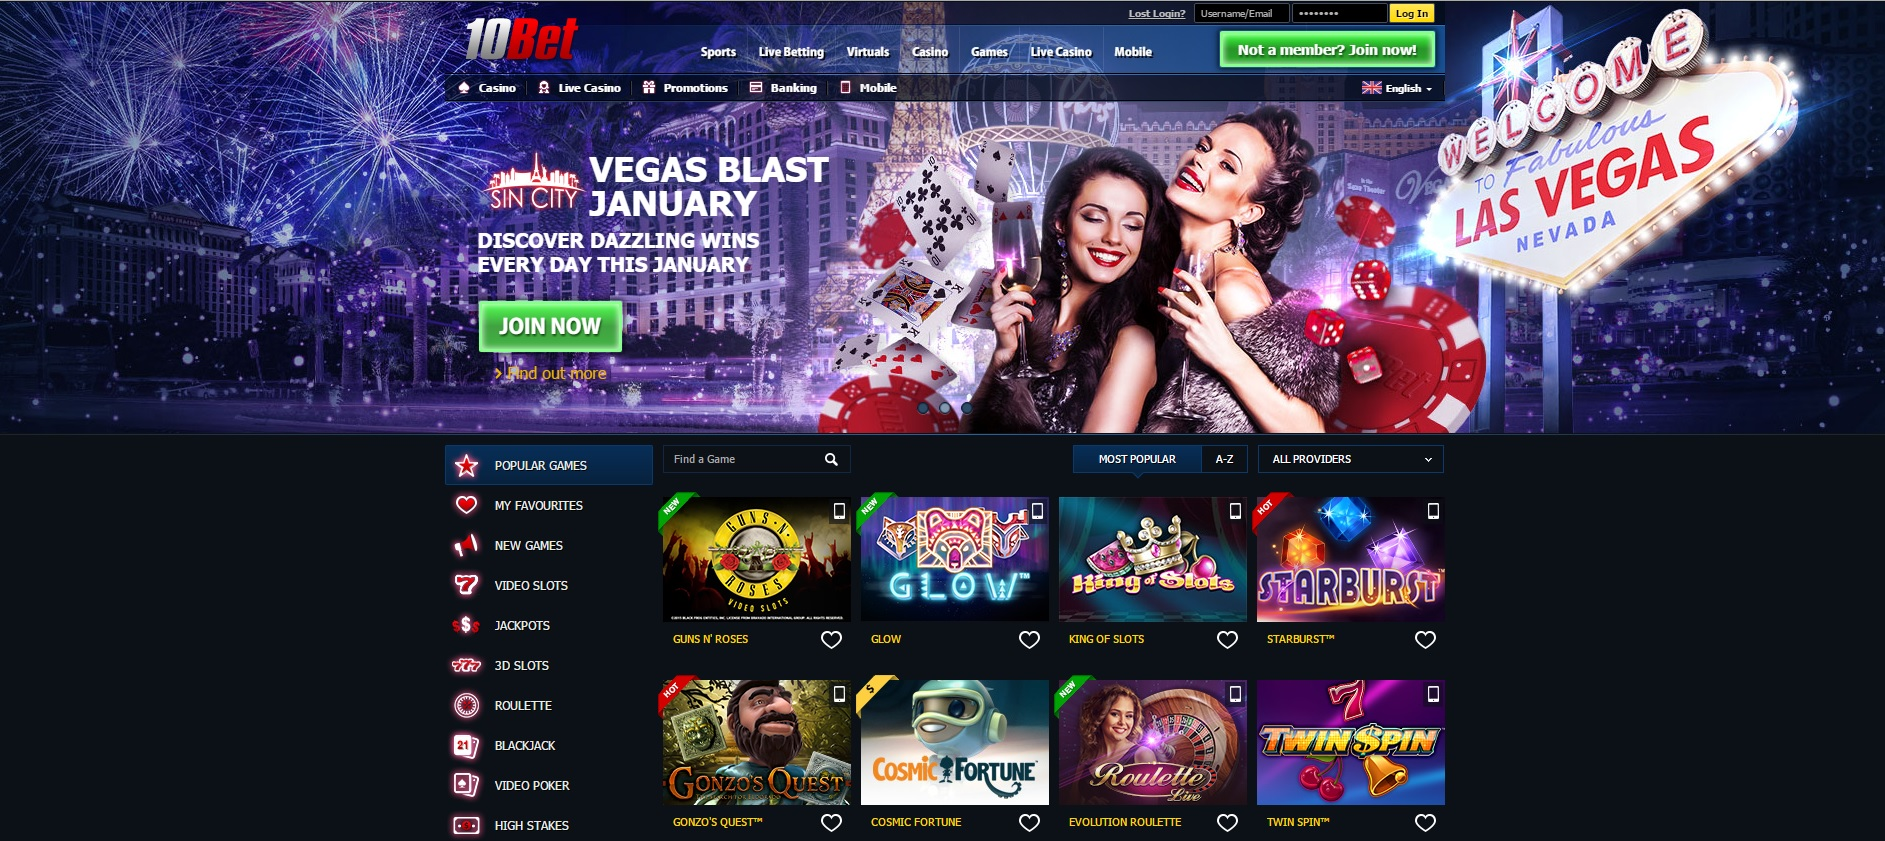 welcome casino bonus 10bet